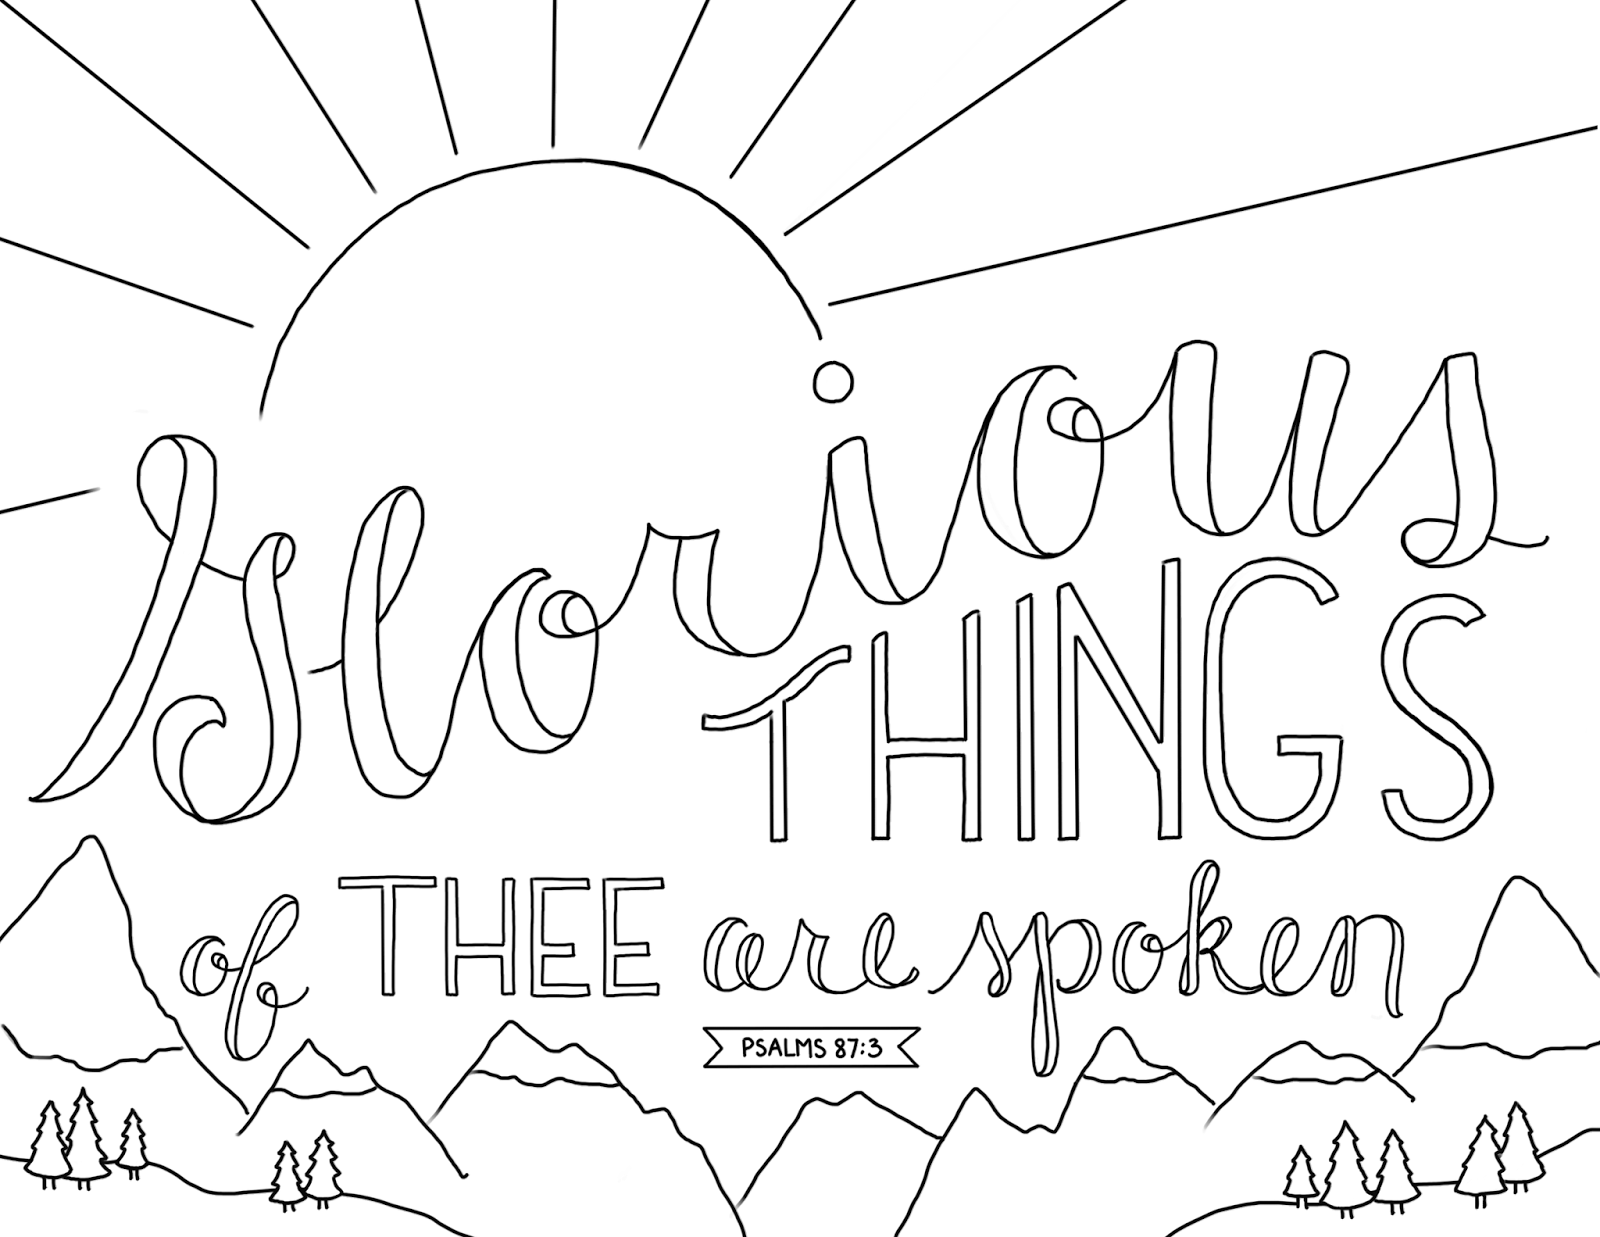 Fabulous Lds Prayer Coloring Page 85 just what i squeeze